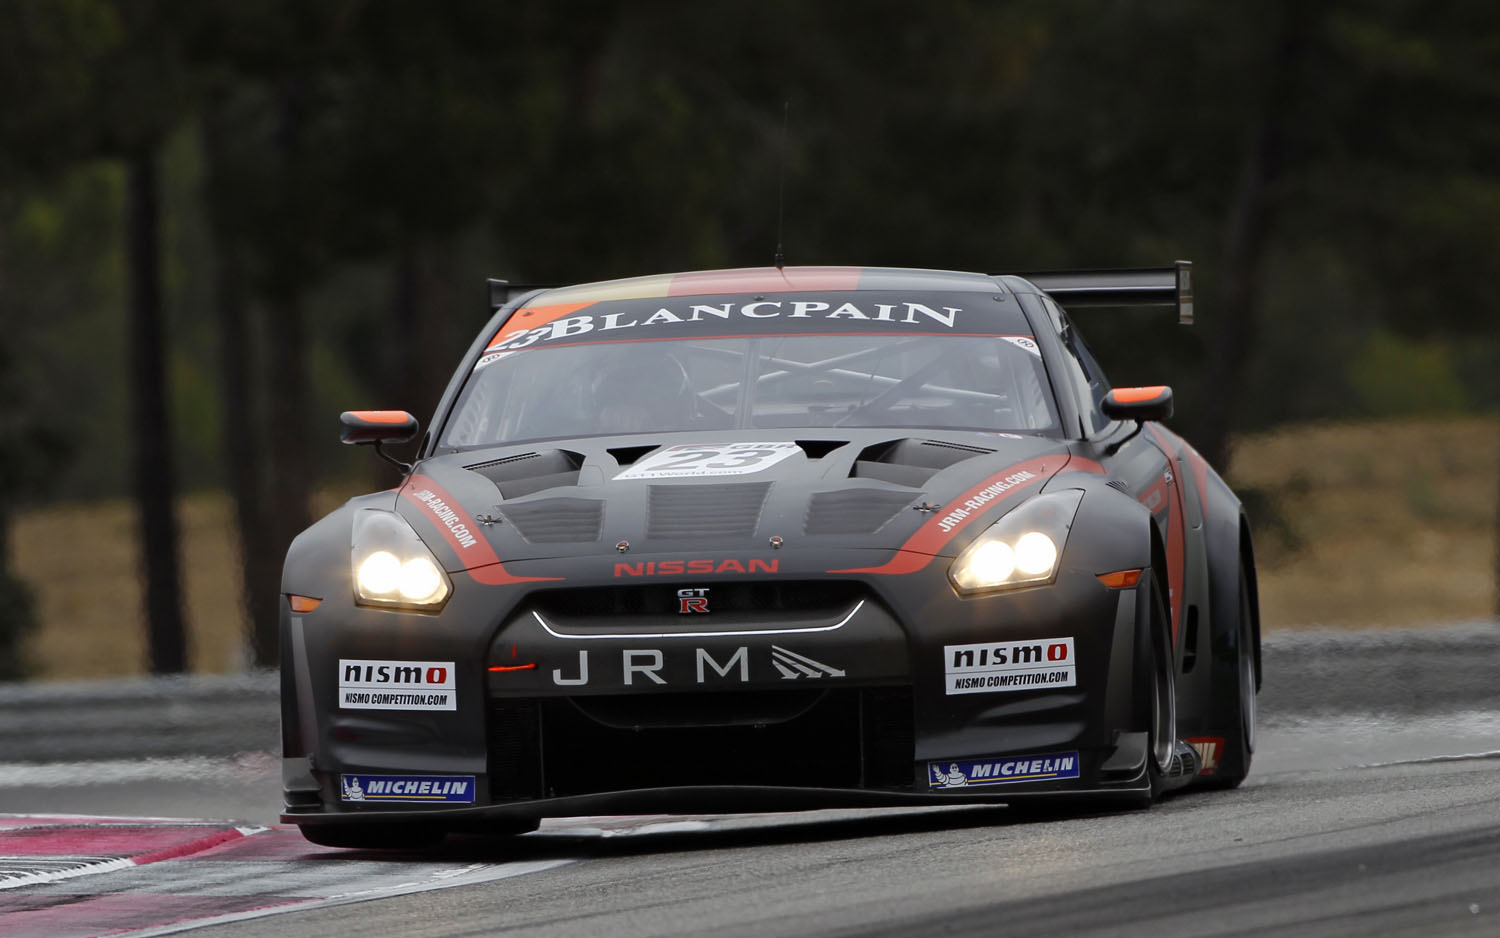 2012 Nissan GT R GT1 Front View1